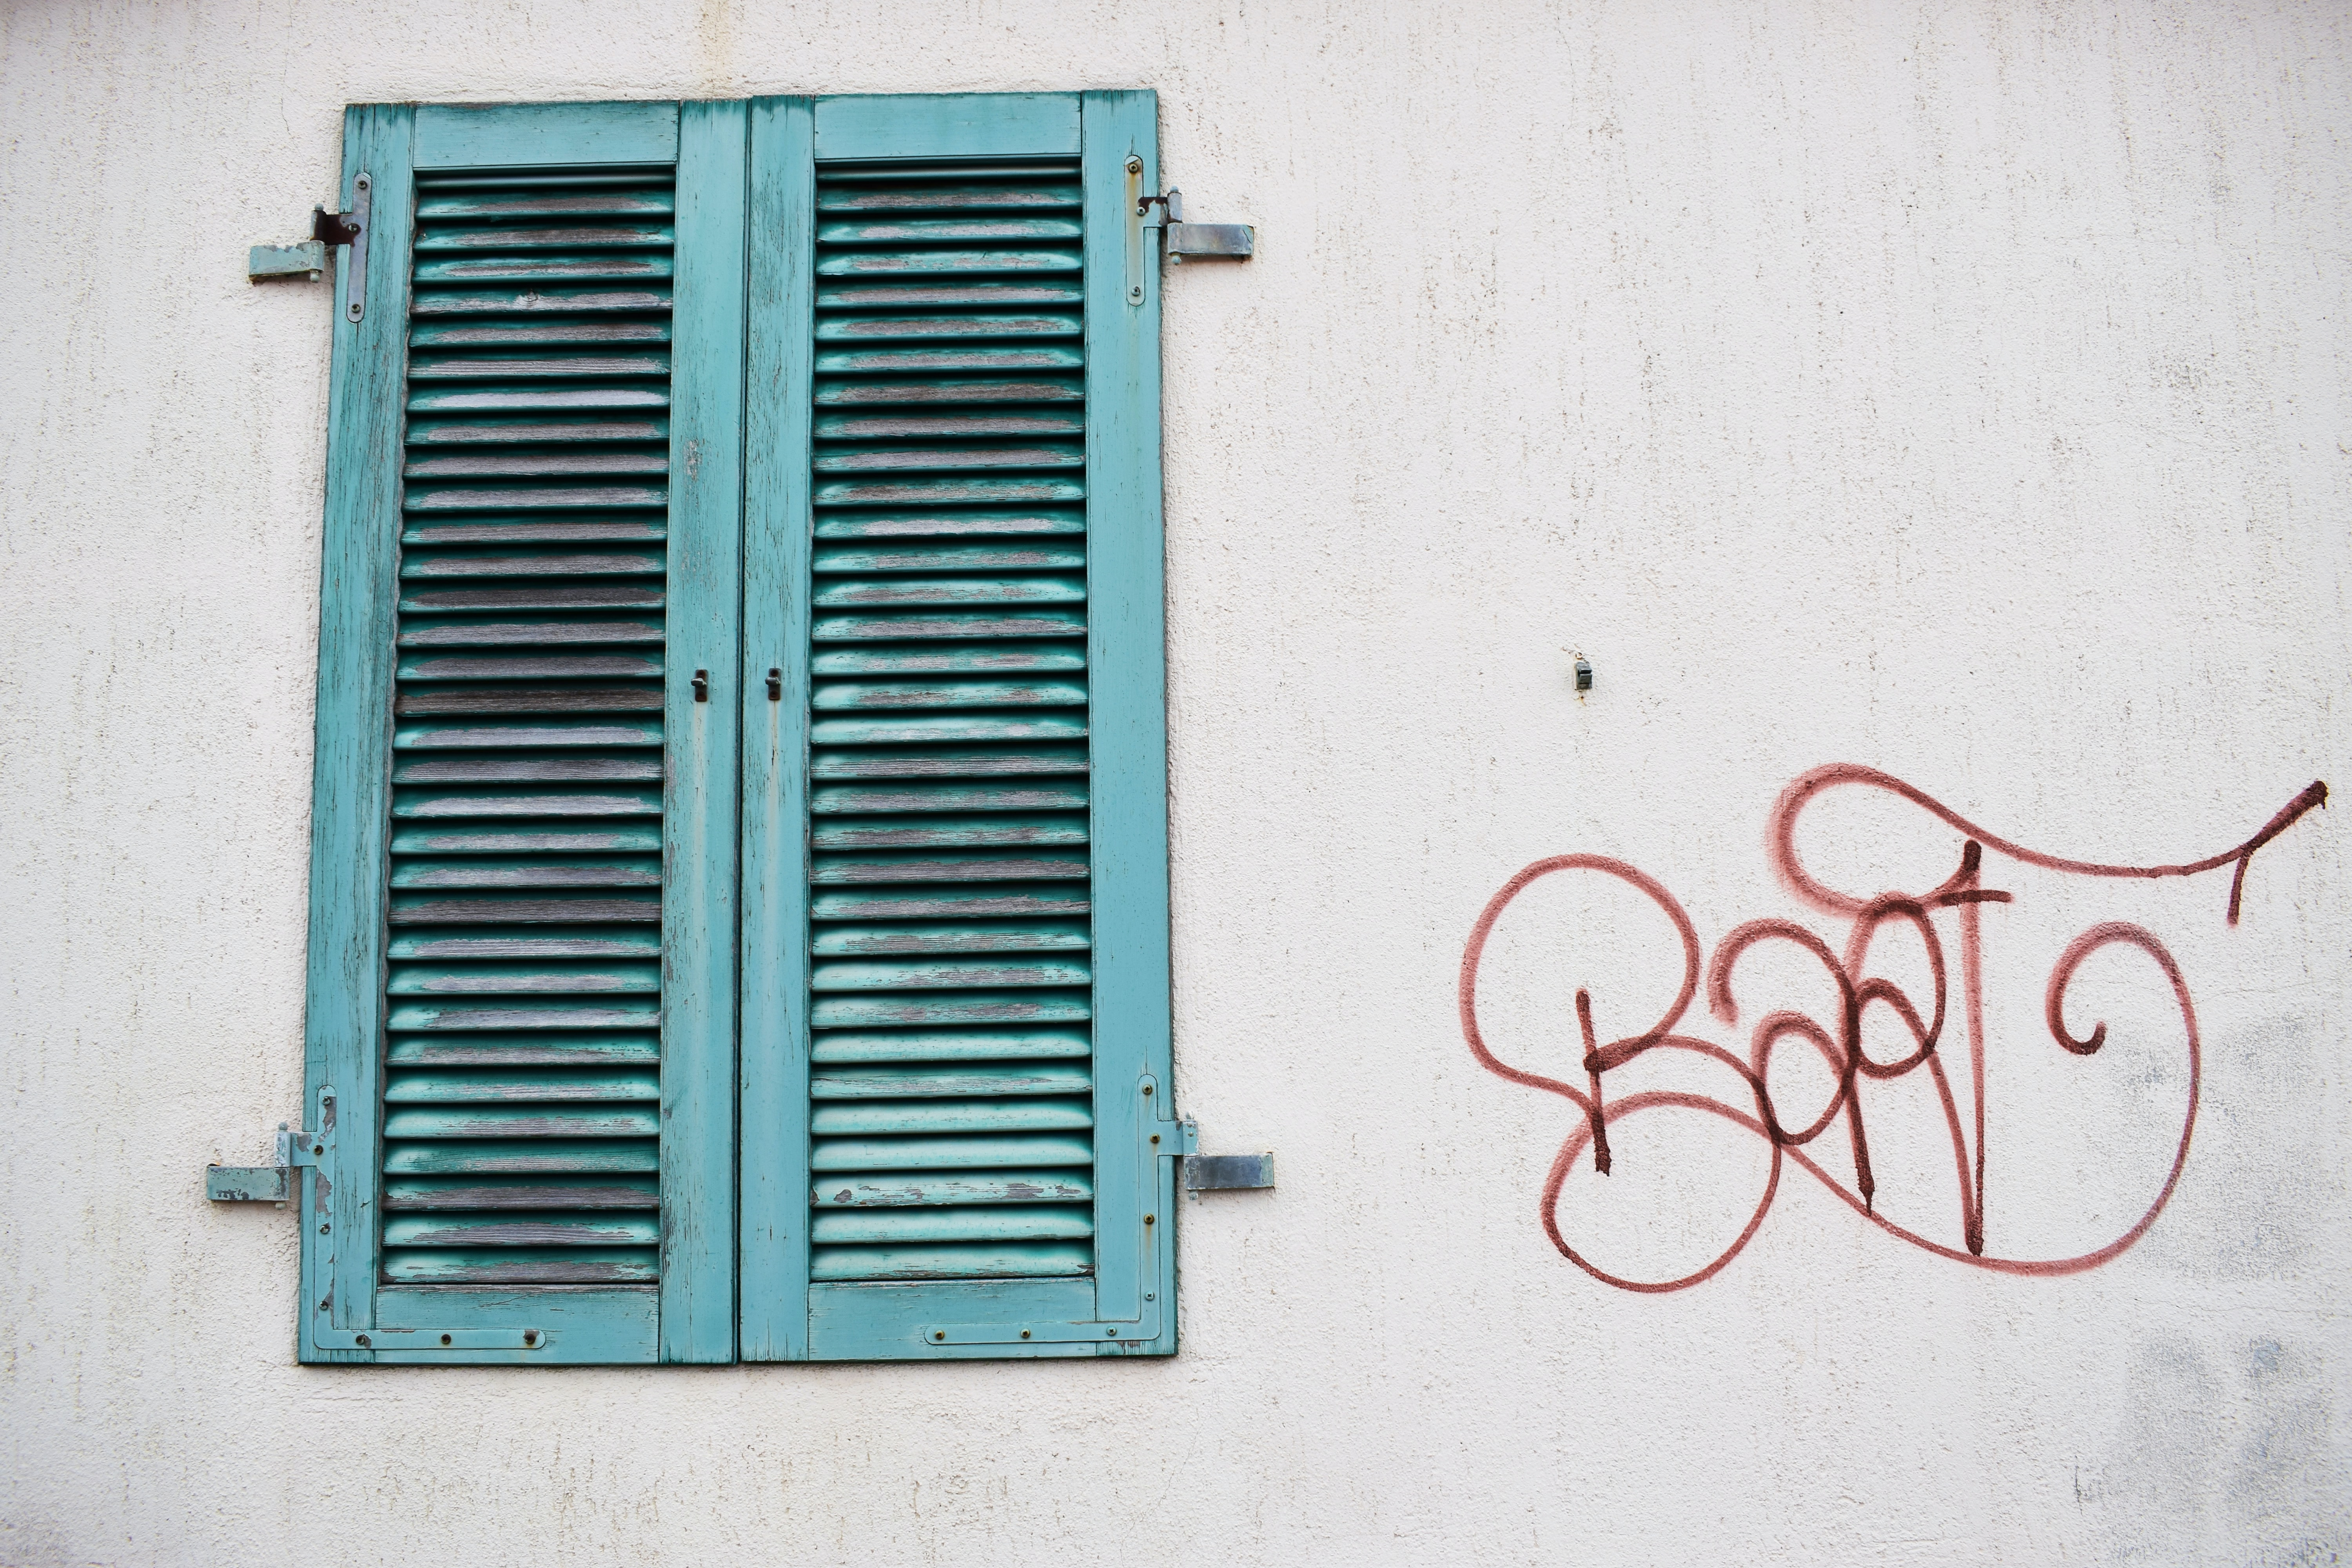 Red graffiti tag on white wall next to worn green window shutter